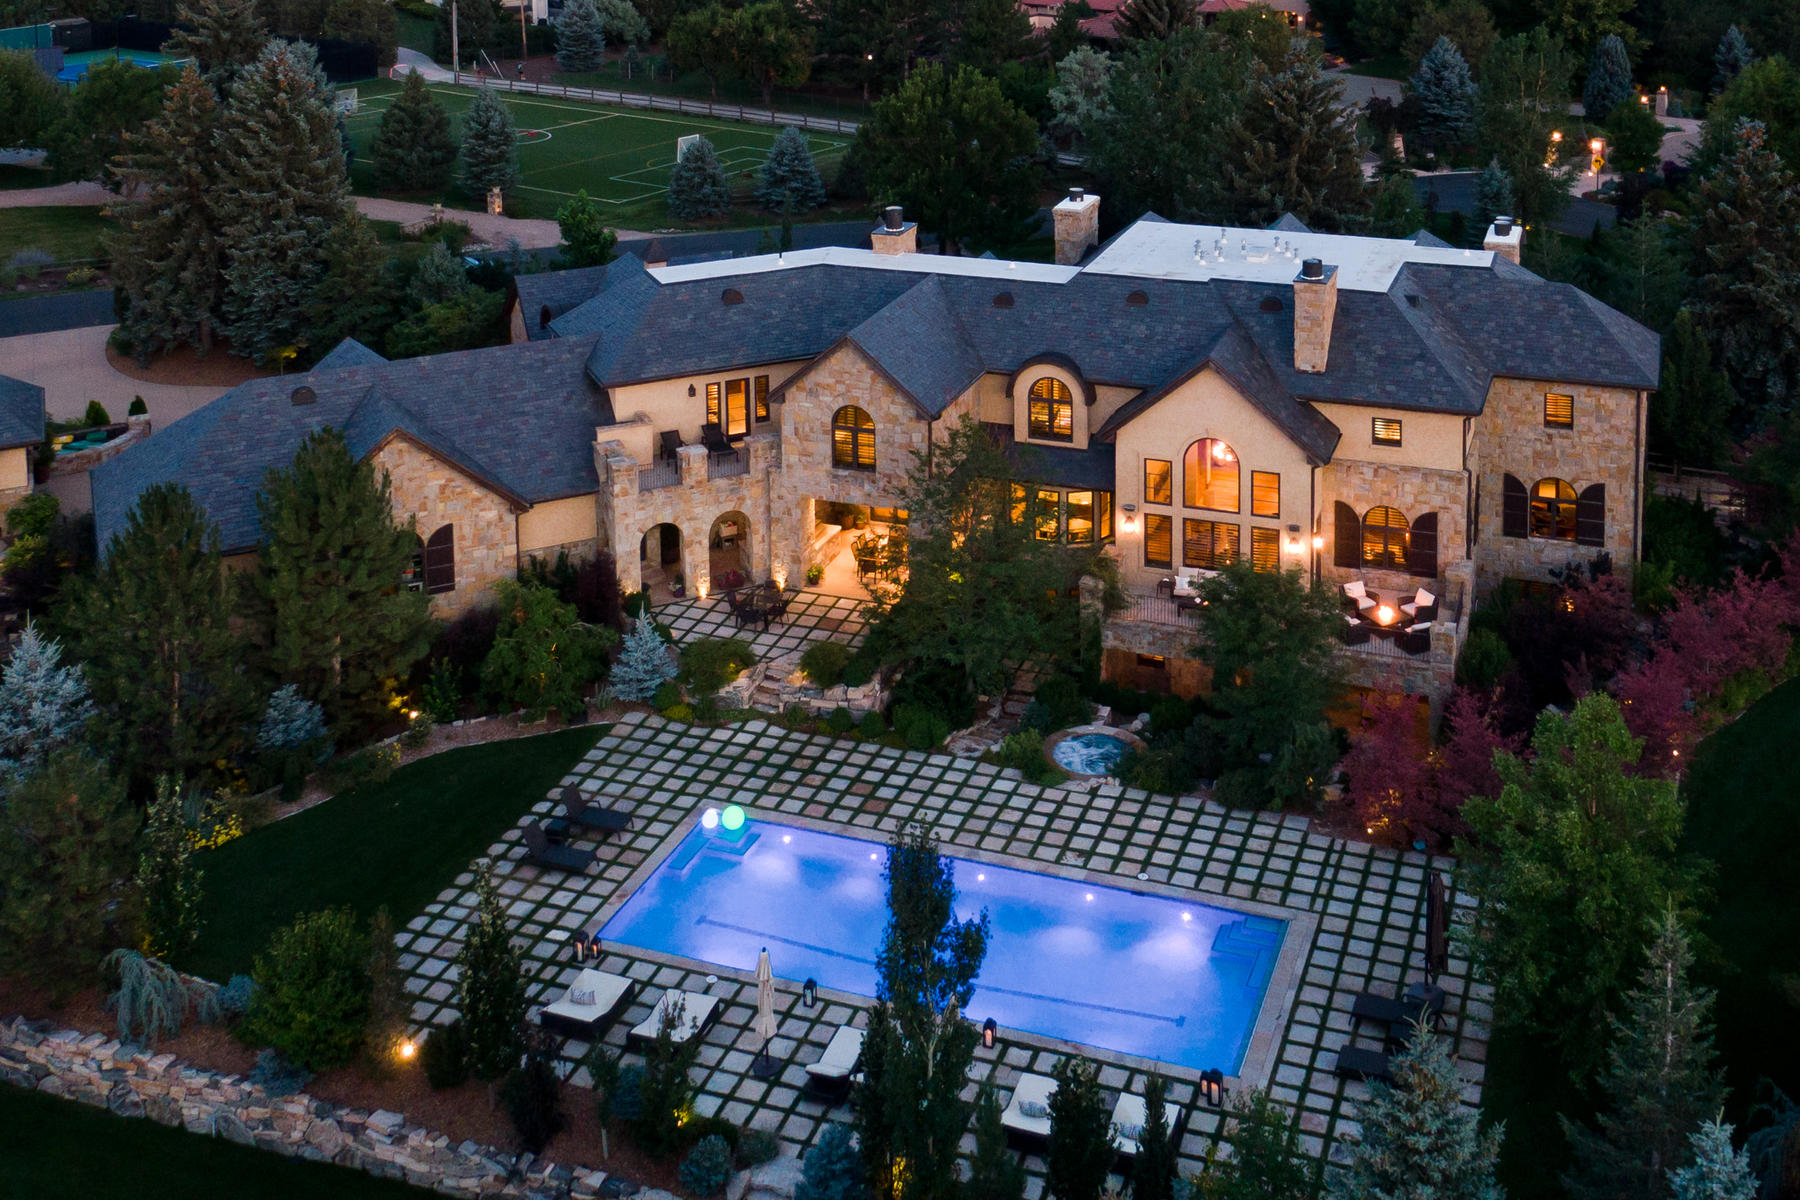 Single Family Homes for Active at Stately Manor Boasting Rustic Elegance 5901 Piedmont Drive Cherry Hills Village, Colorado 80111 United States